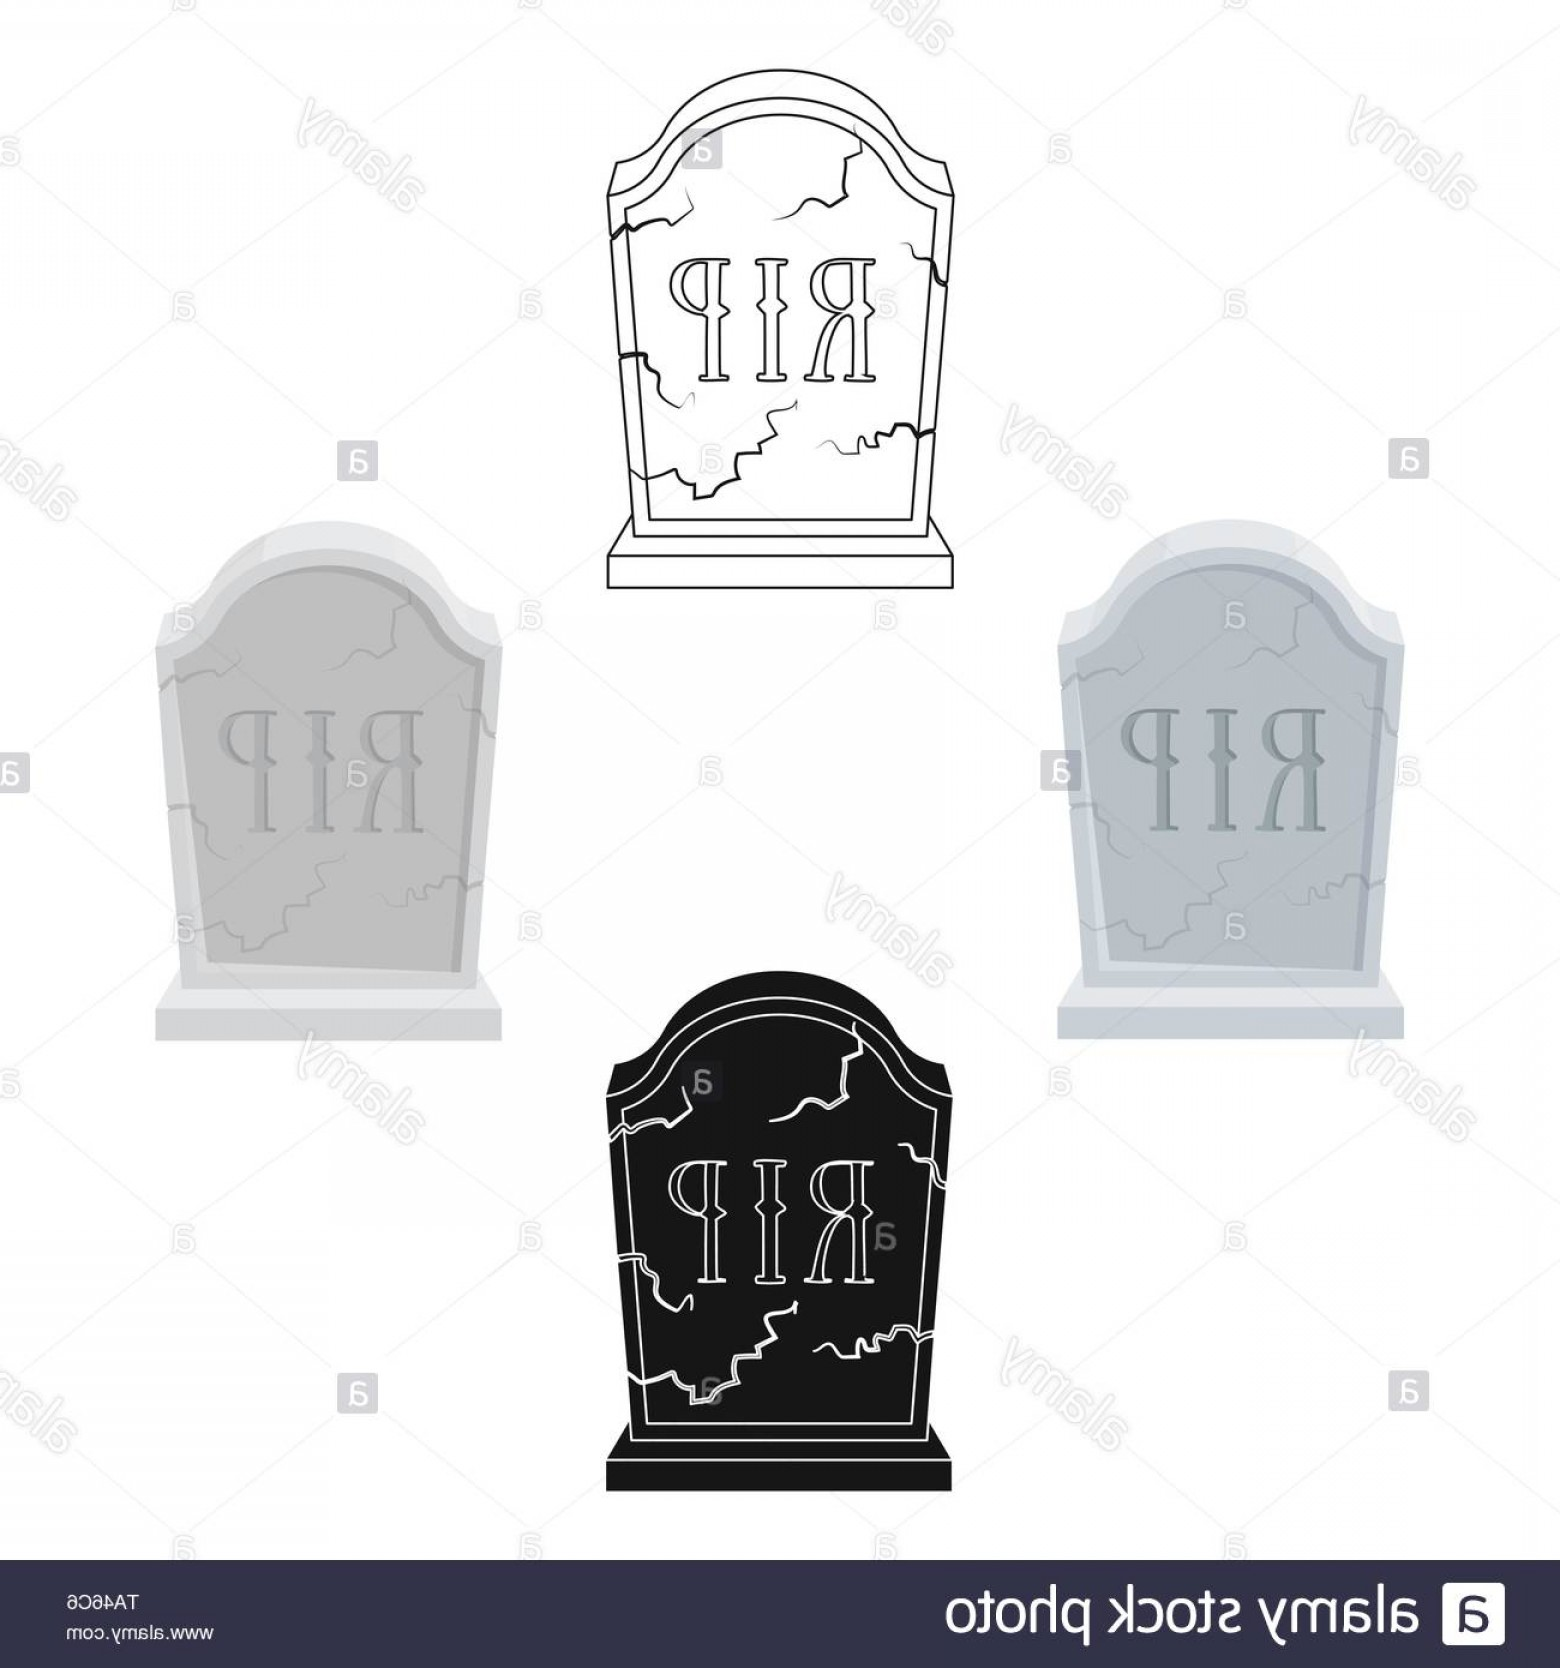 Gravestone Black And Whit Vector JPEG: Headstone Icon In Cartoonblack Design Isolated On White Background Funeral Ceremony Symbol Stock Vector Illustration Image